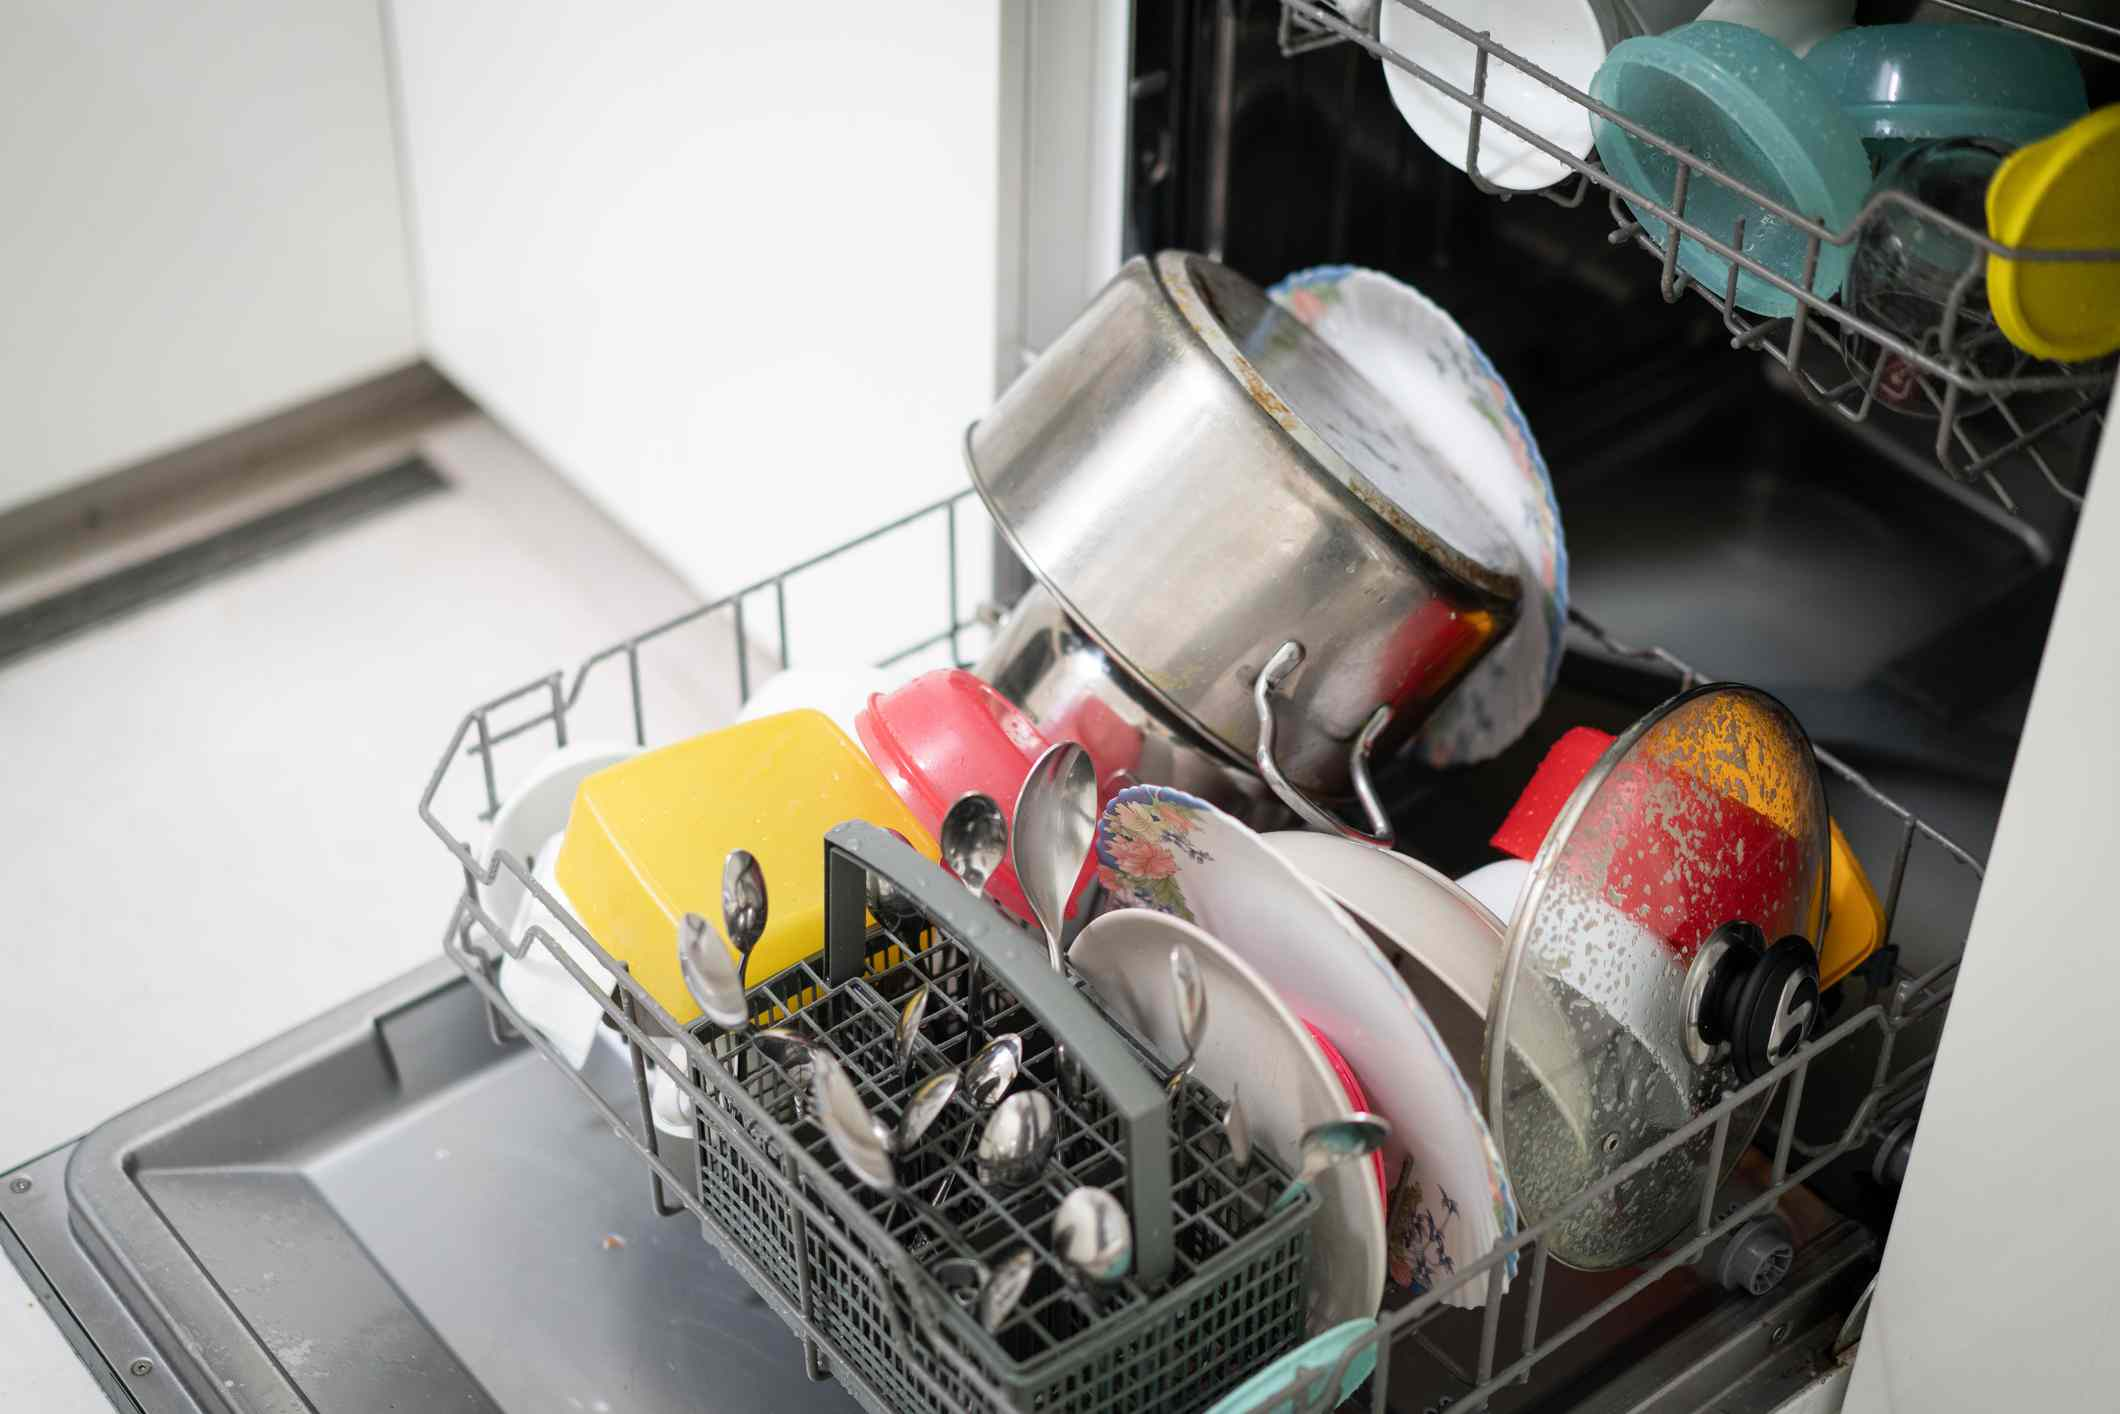 A dishwasher loaded with dishes